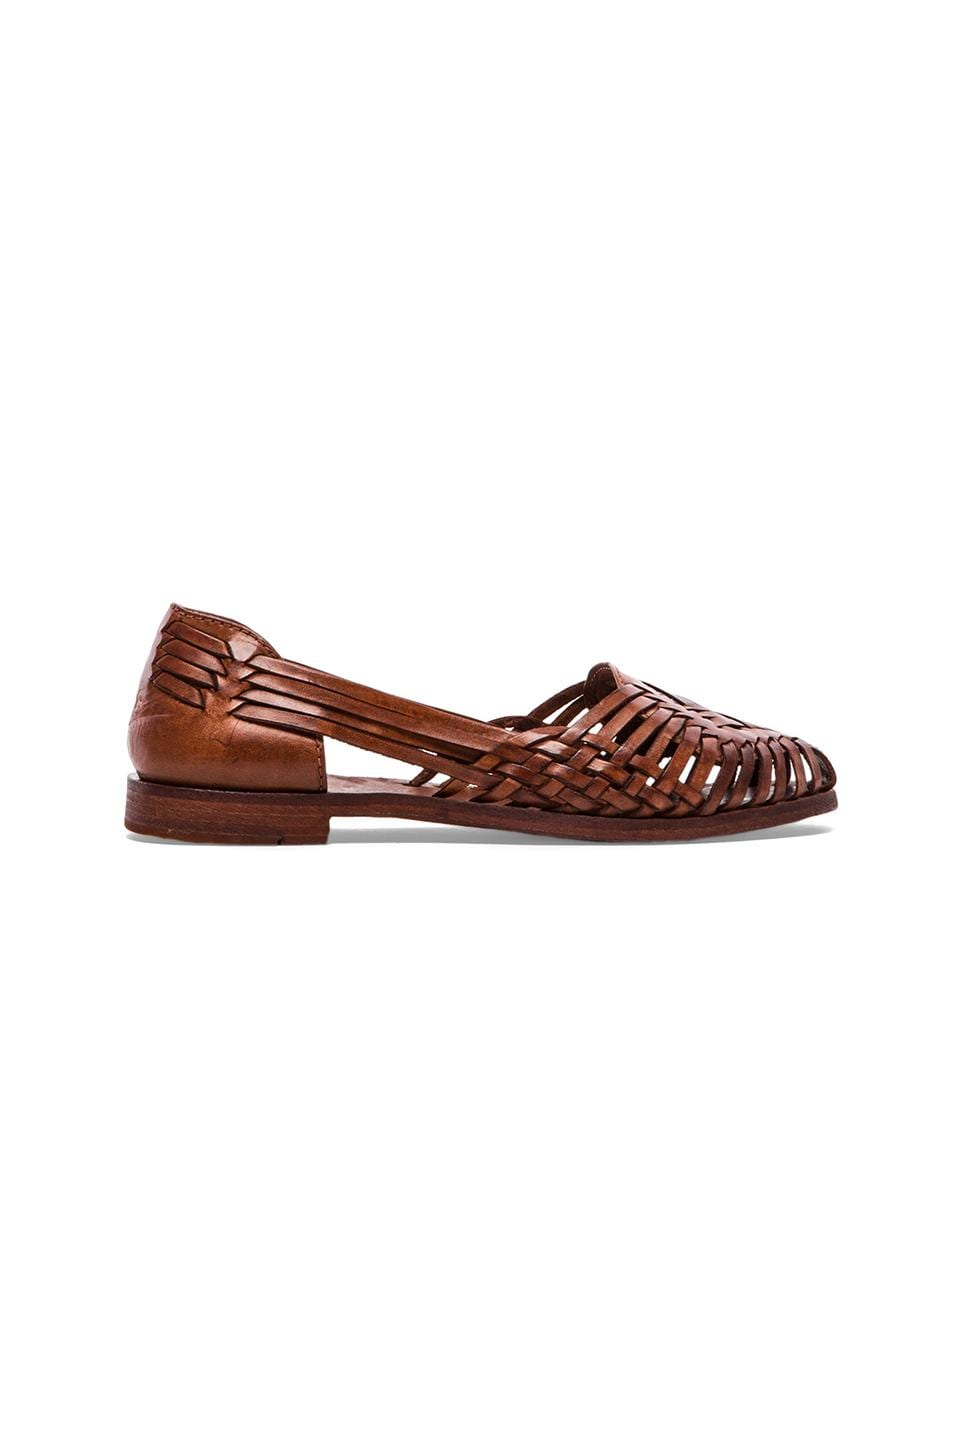 Frye Heather Huarache Flat in Cognac